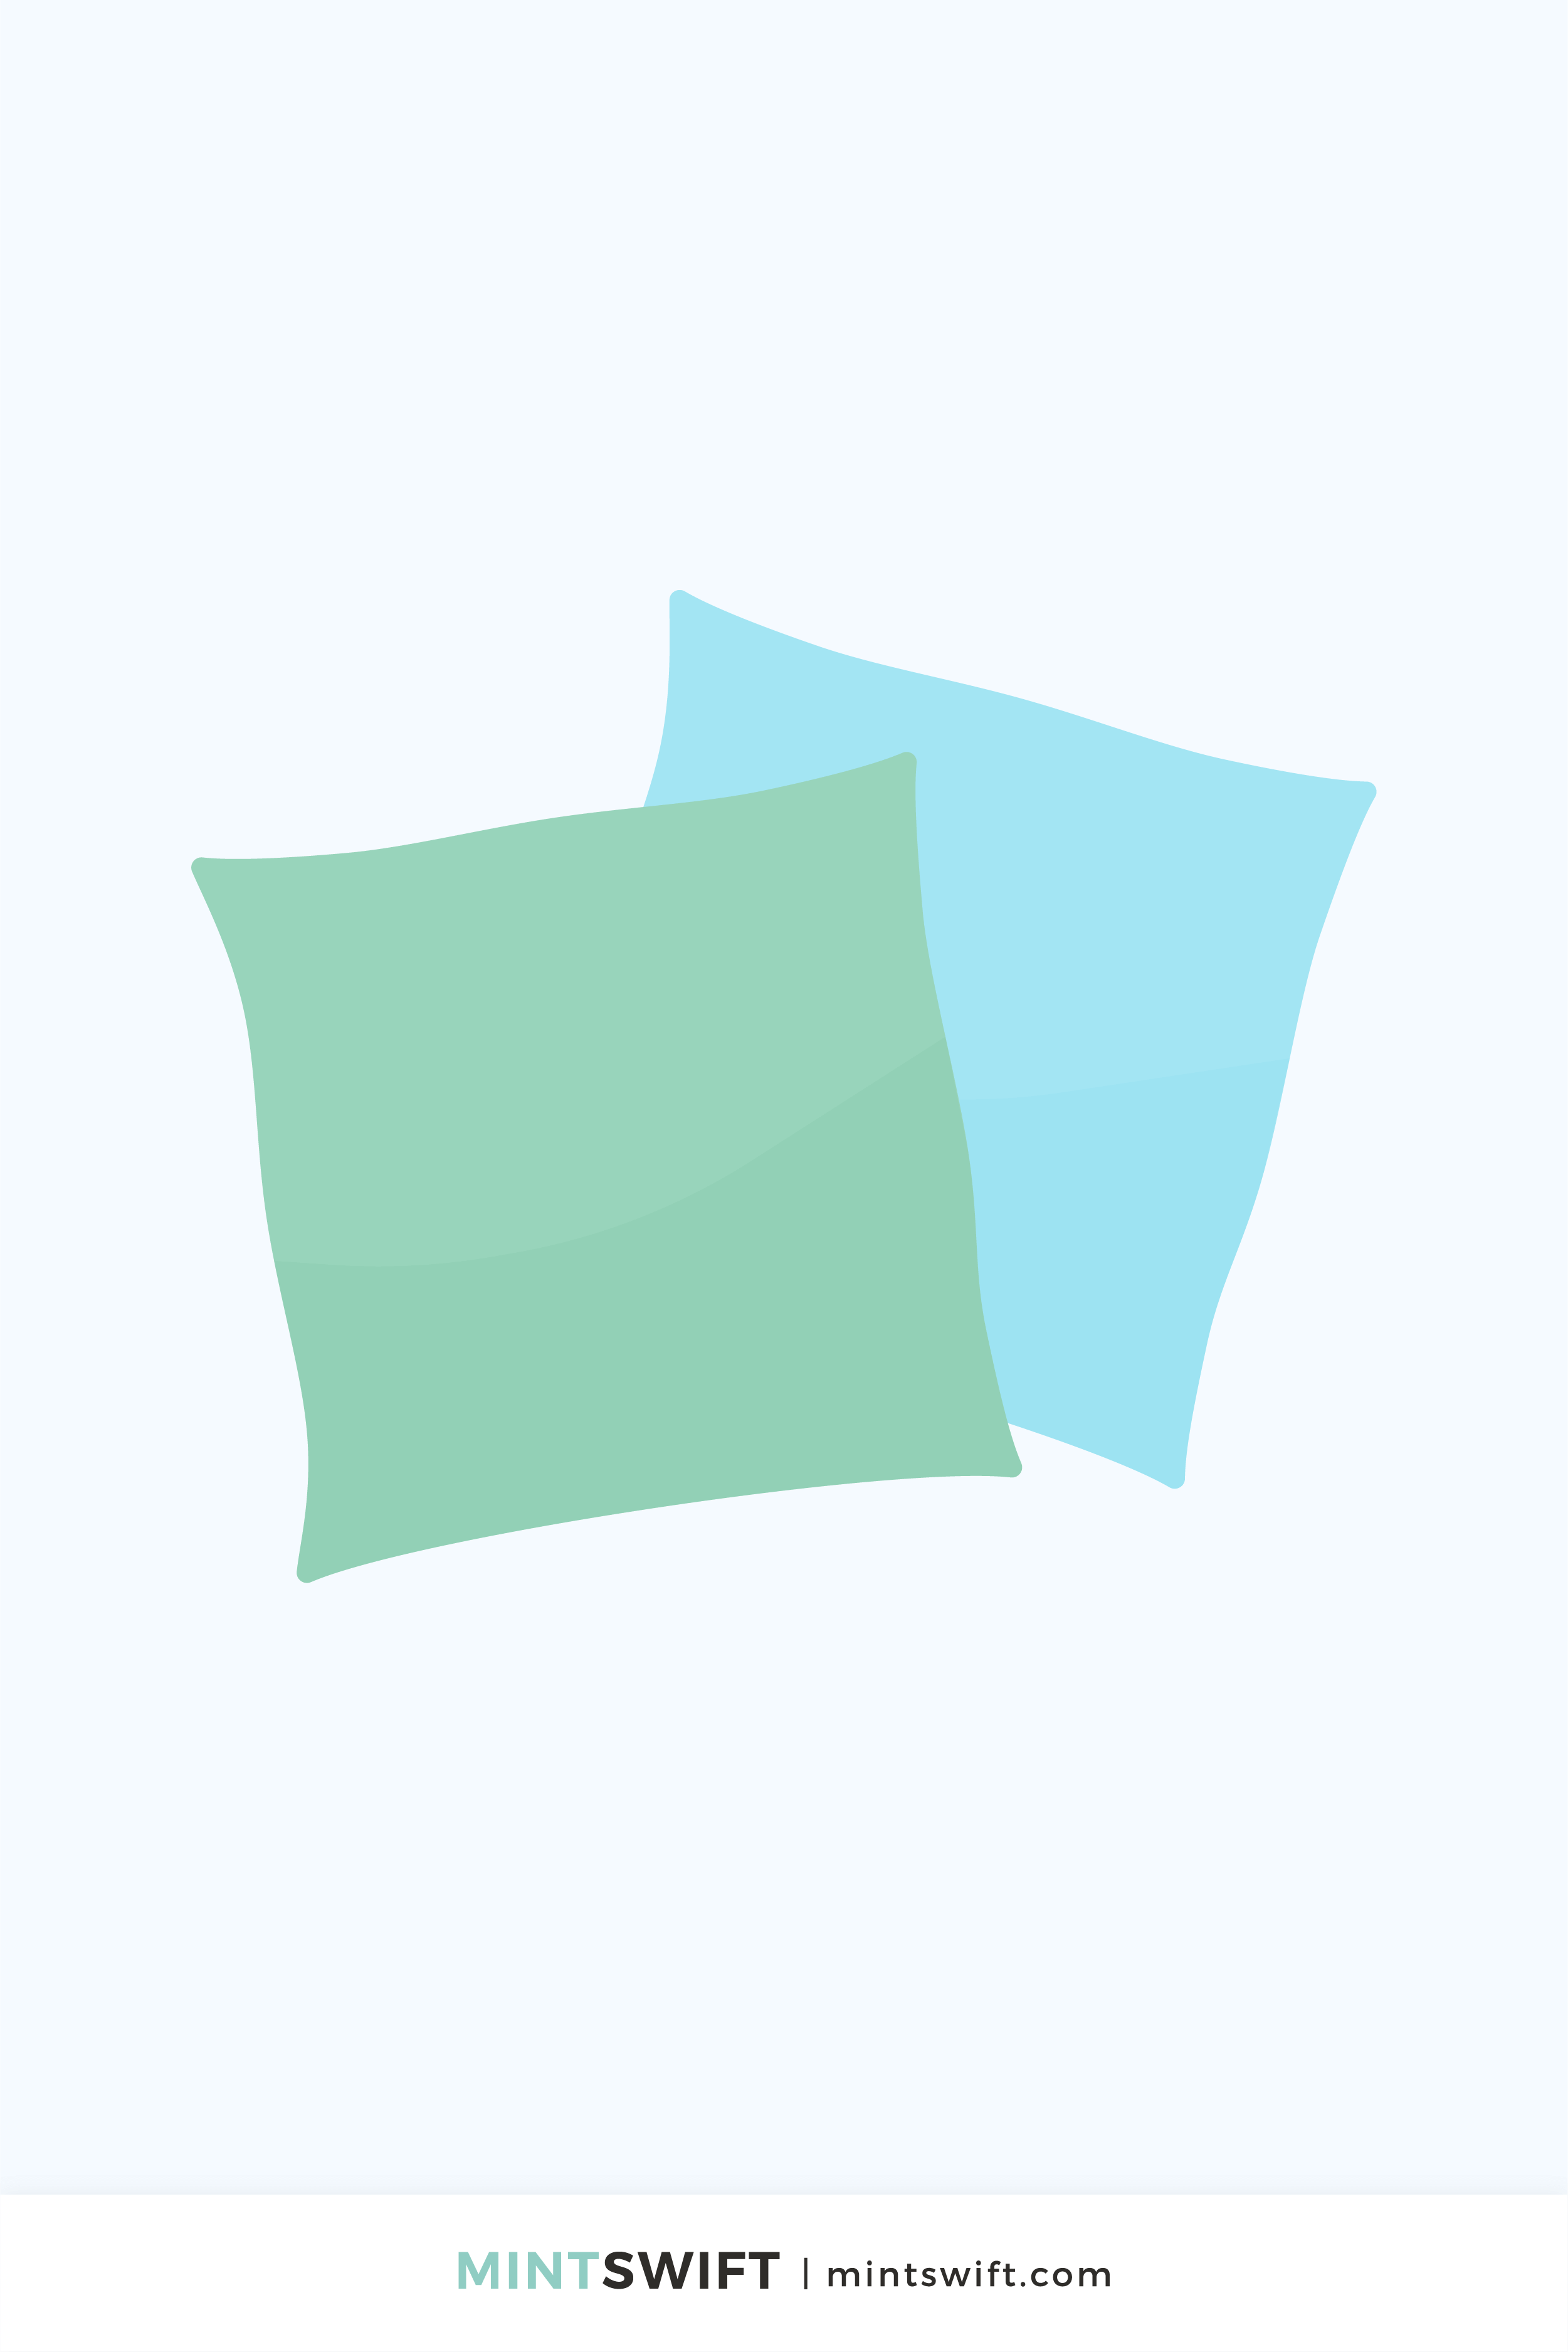 Vector illustration of blue and green pillows in flat design style on a light grey background